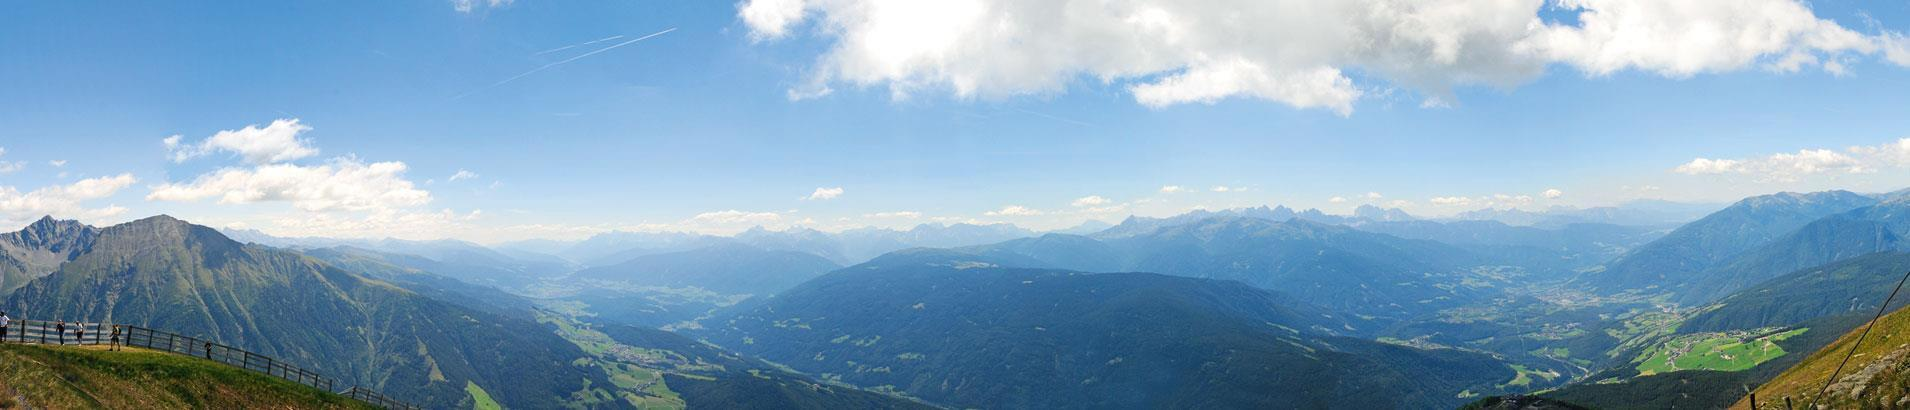 banner-panorama-sommer2